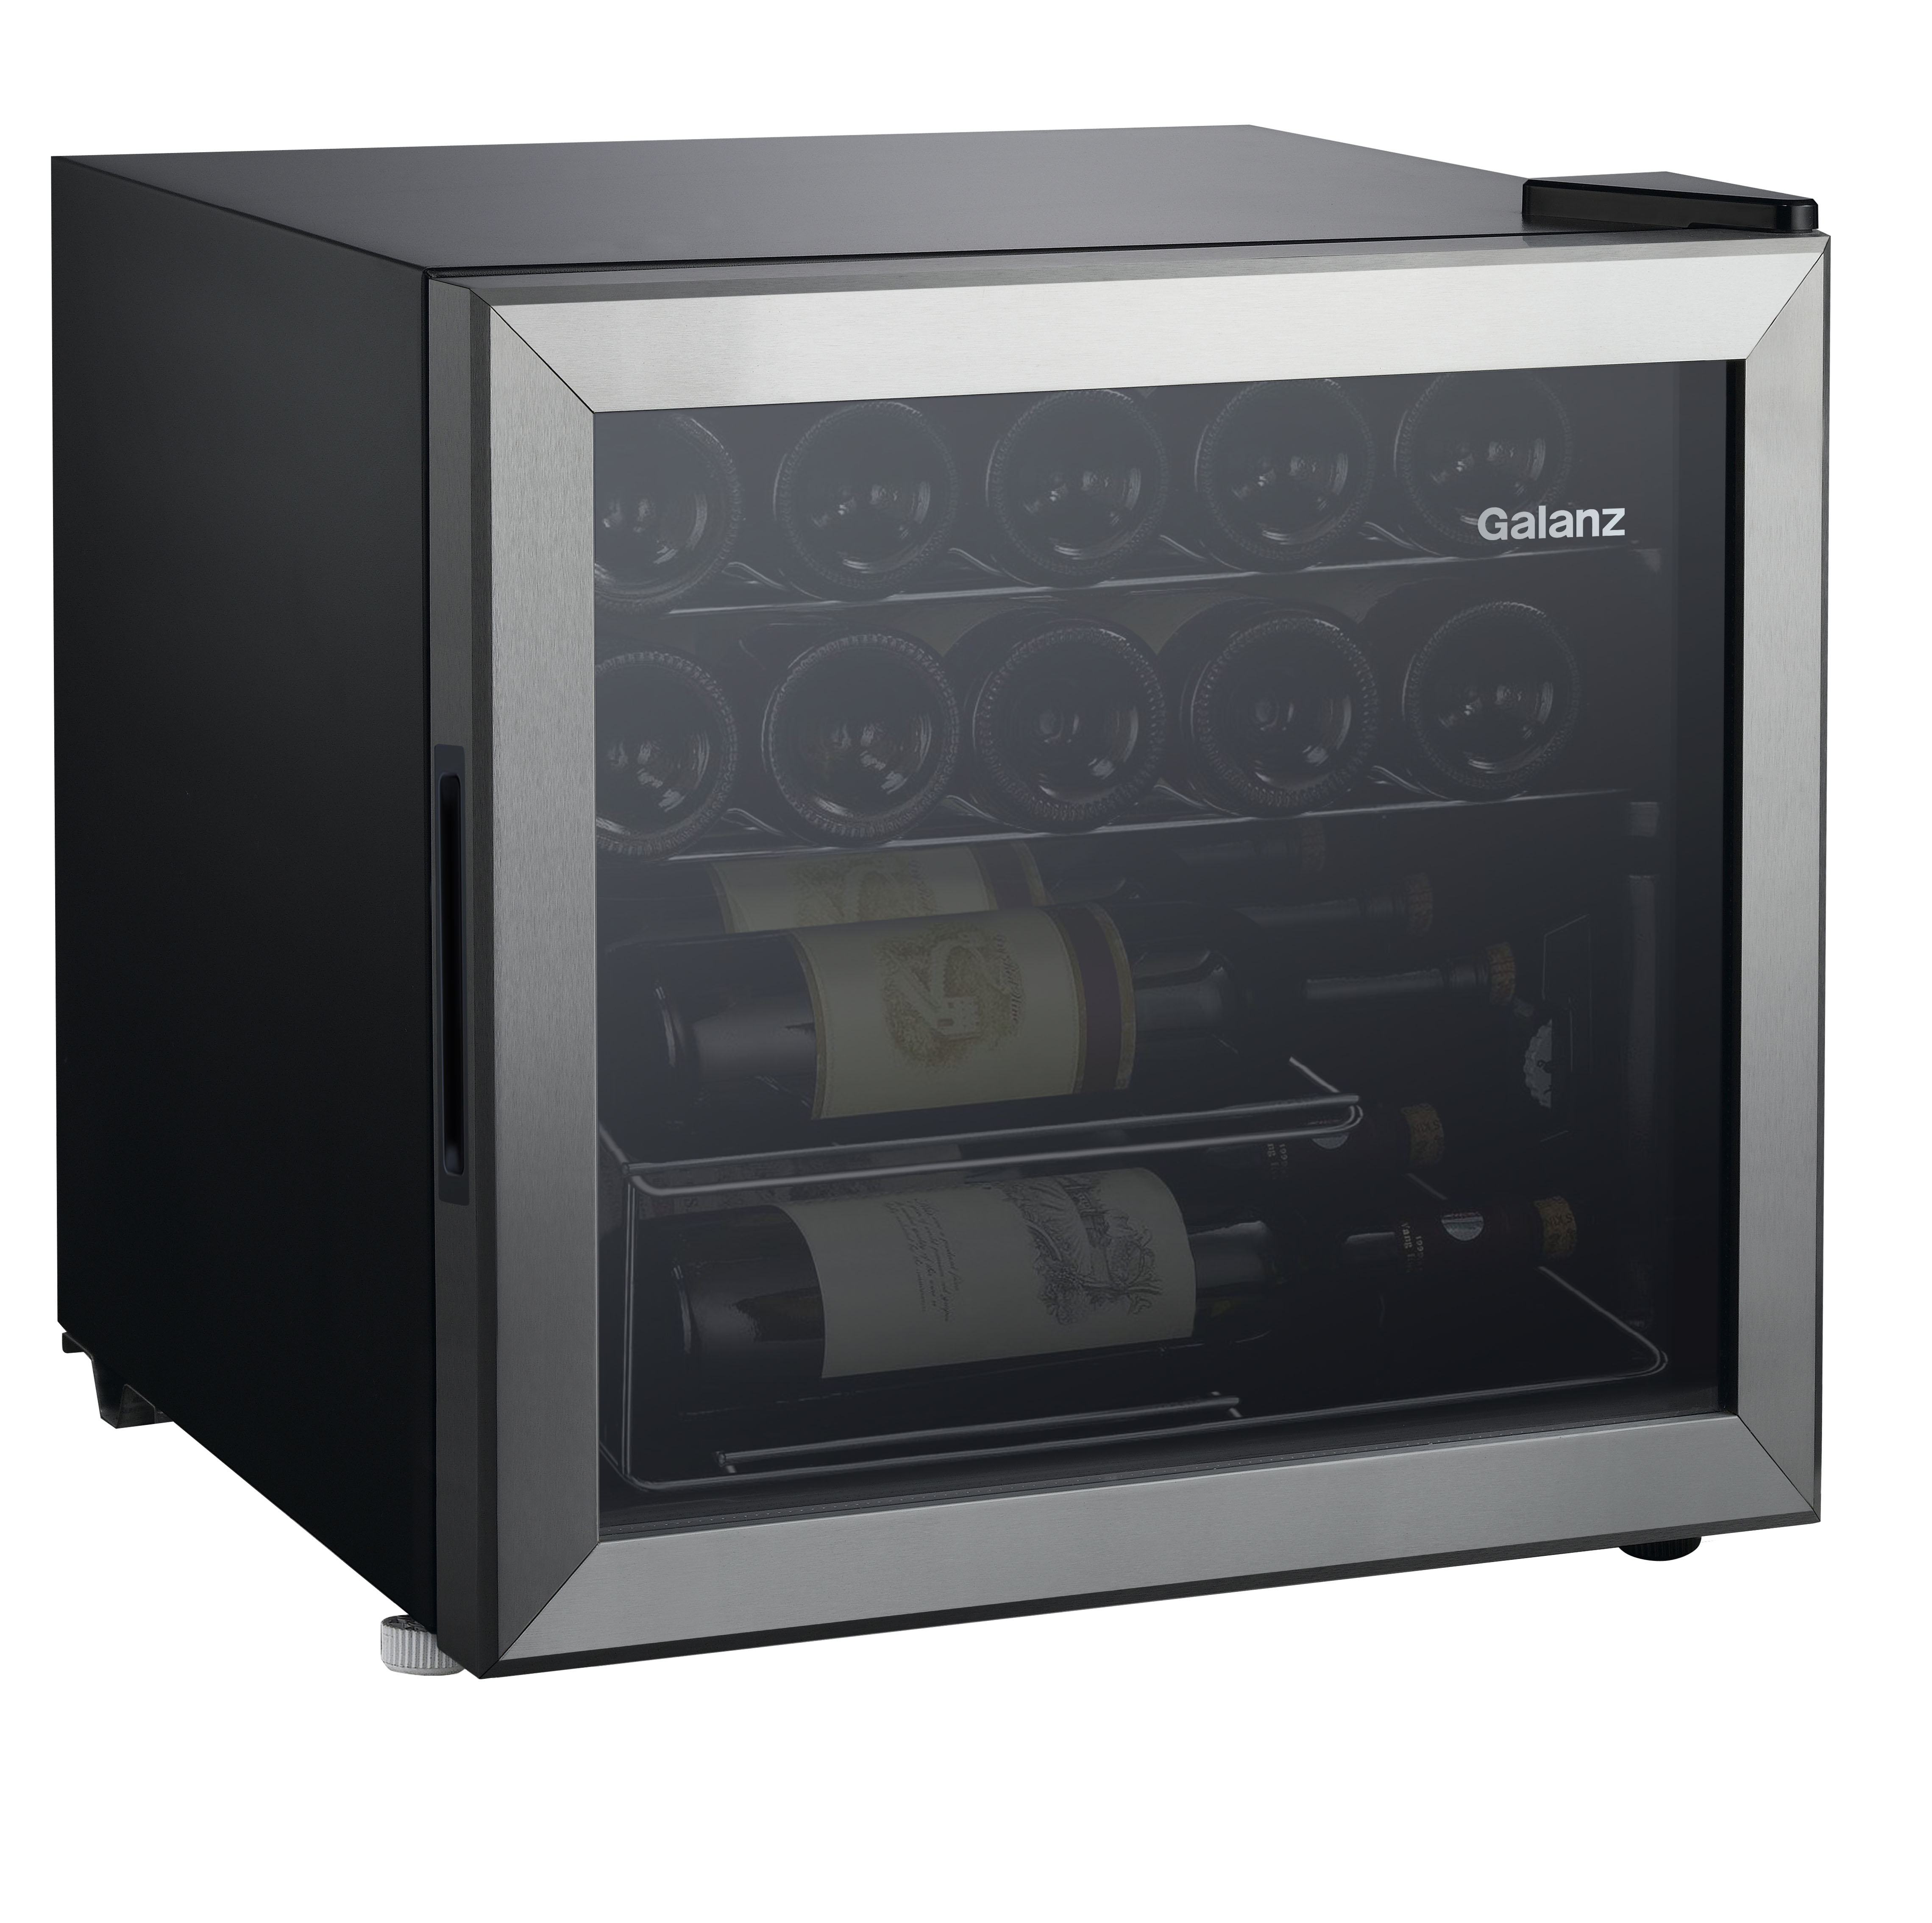 Galanz 16-Bottle Wine Cooler GLW18S, Stainless Steel Steel Door